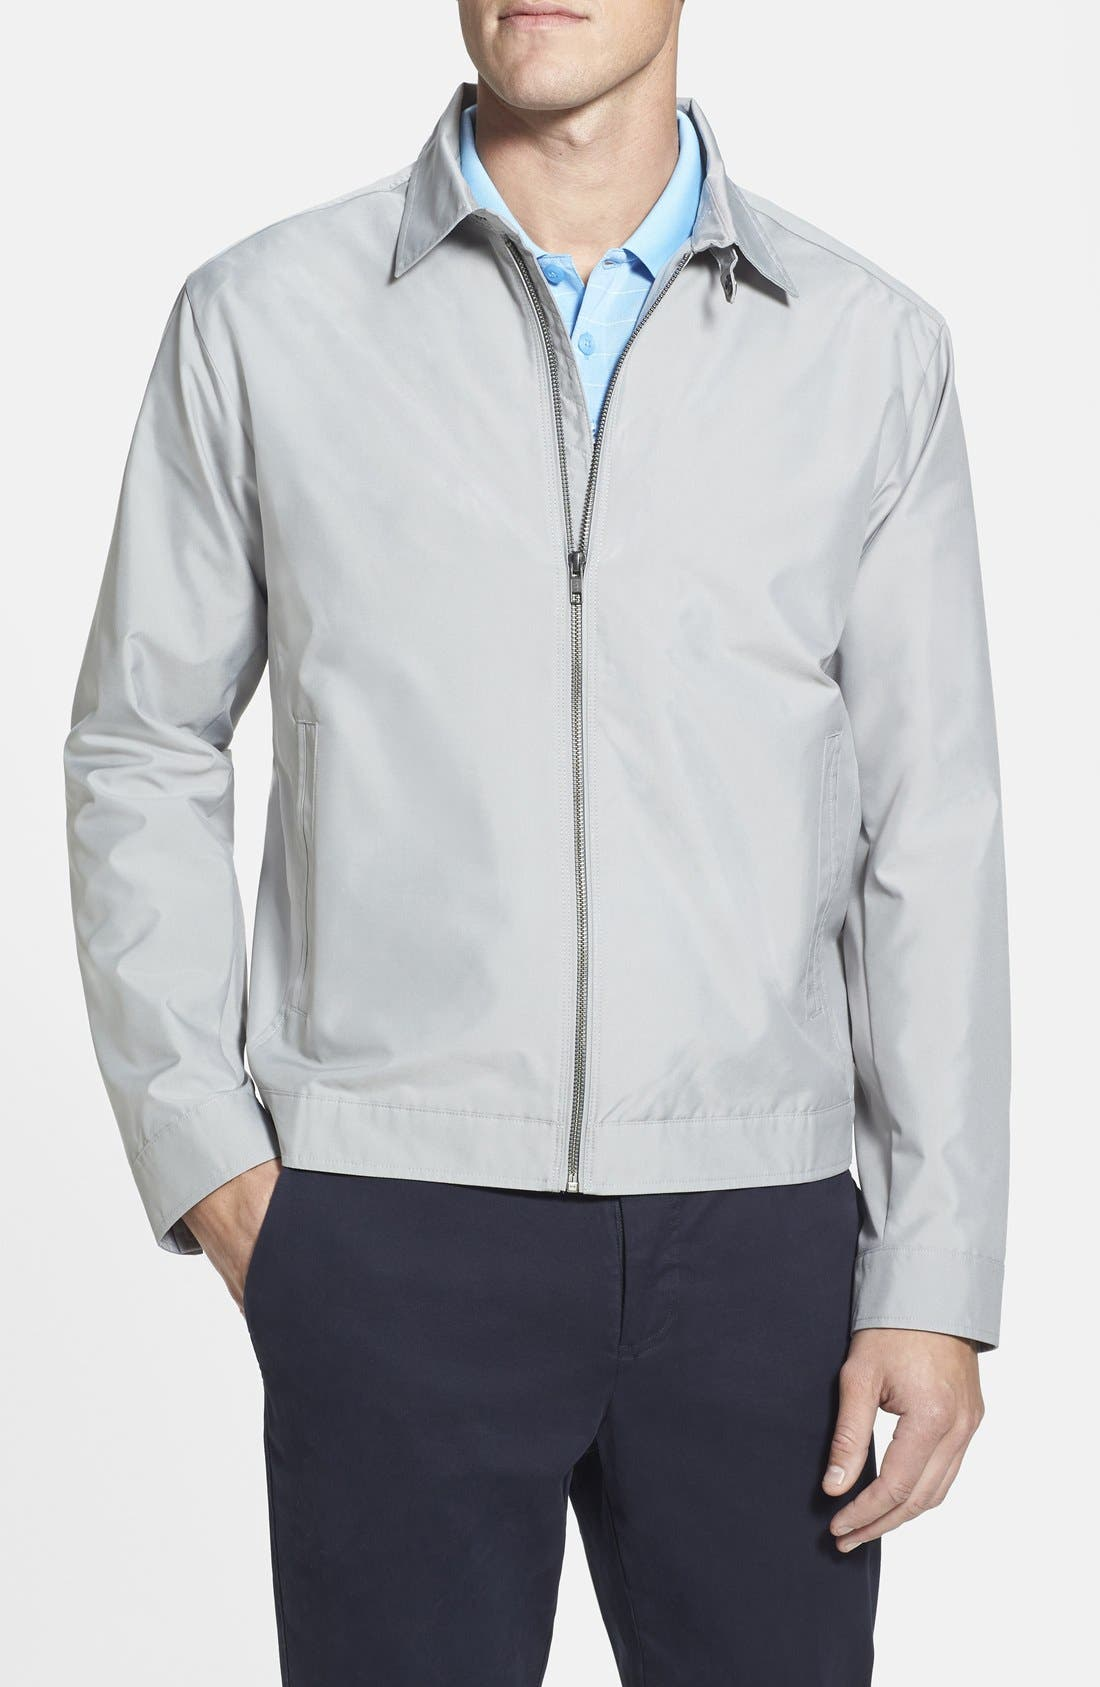 Main Image - Cutter & Buck 'WeatherTec Mason' Wind & Water Resistant Jacket